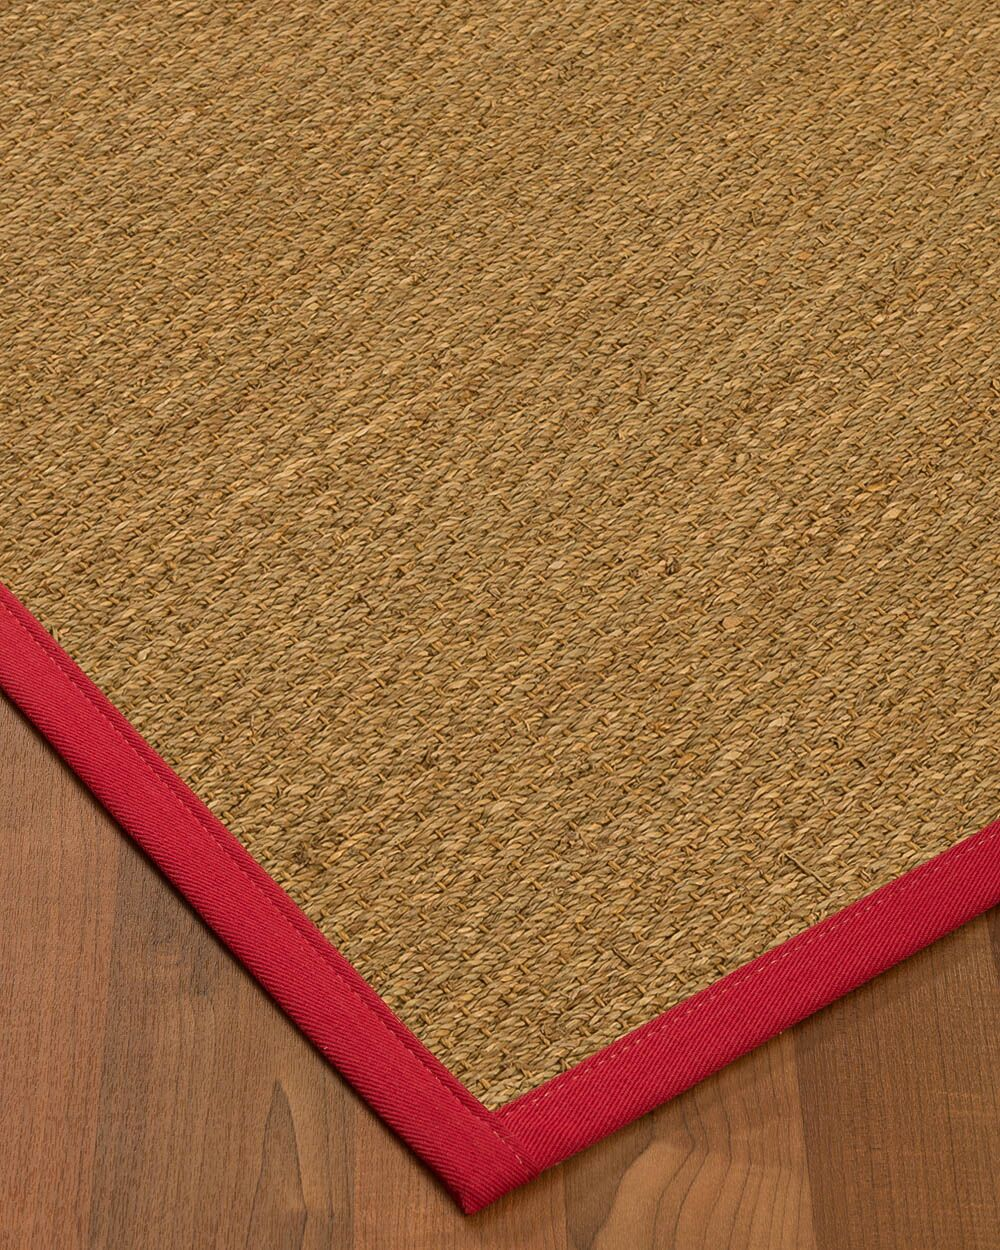 Anya Border Hand-Woven Beige/Red Area Rug Rug Size: Rectangle 9' x 12', Rug Pad Included: Yes